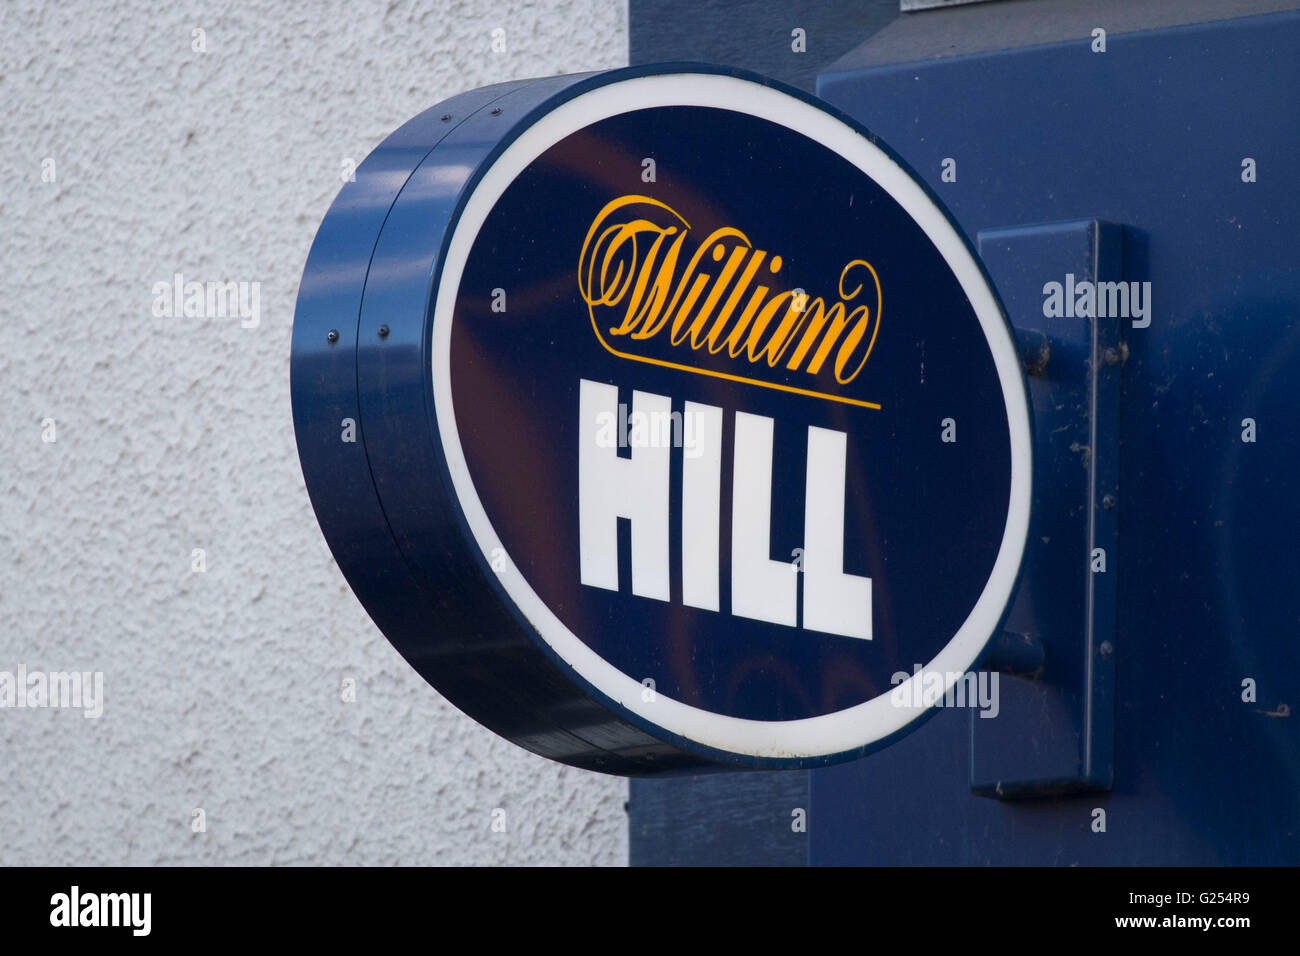 William Hill bookies sign logo - Stock Image